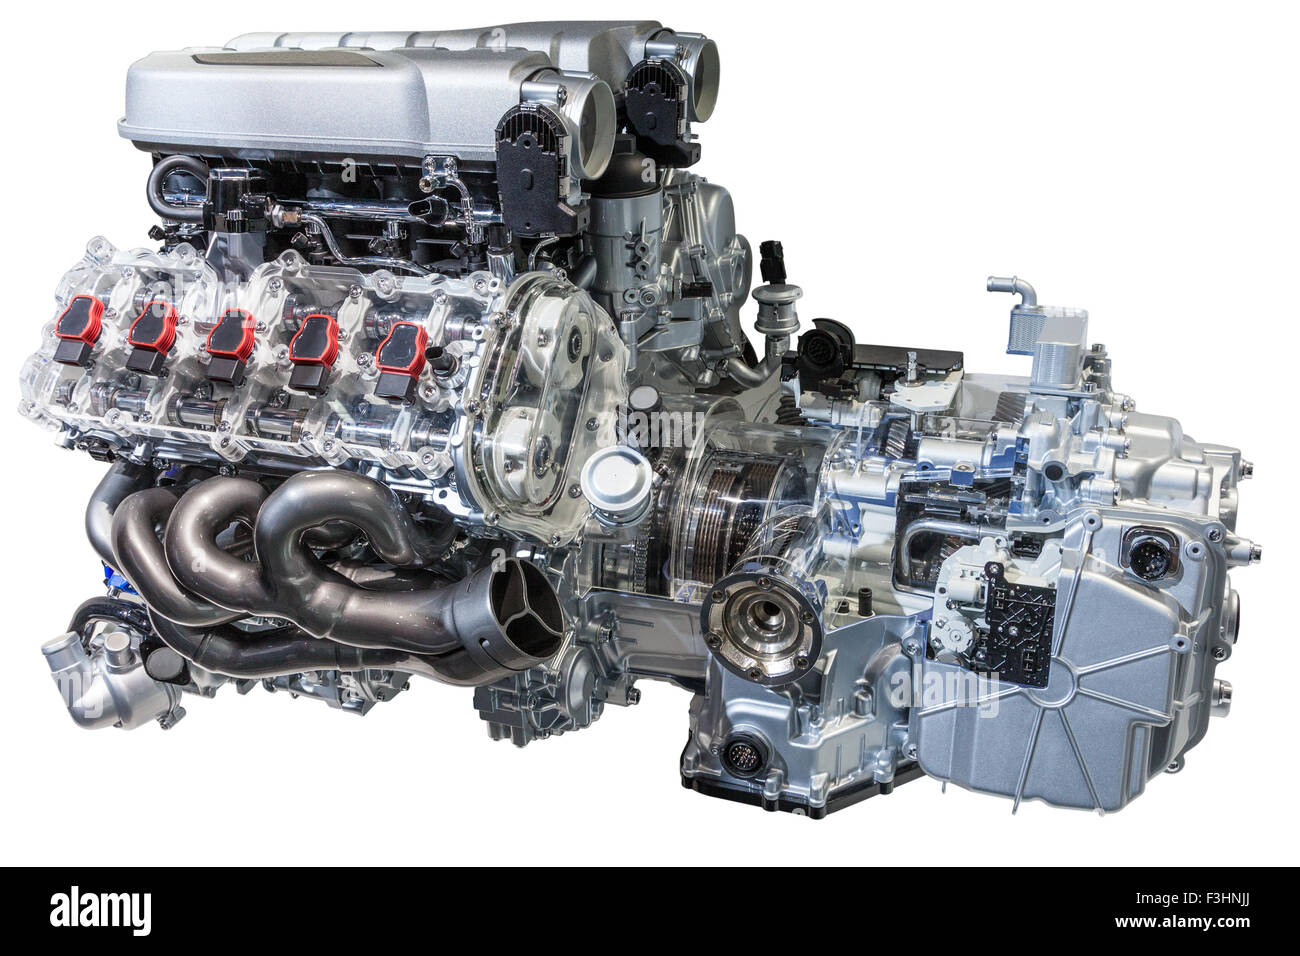 Engine And Transmission >> Modern V10 Sports Car Engine With Transmission Isolated On